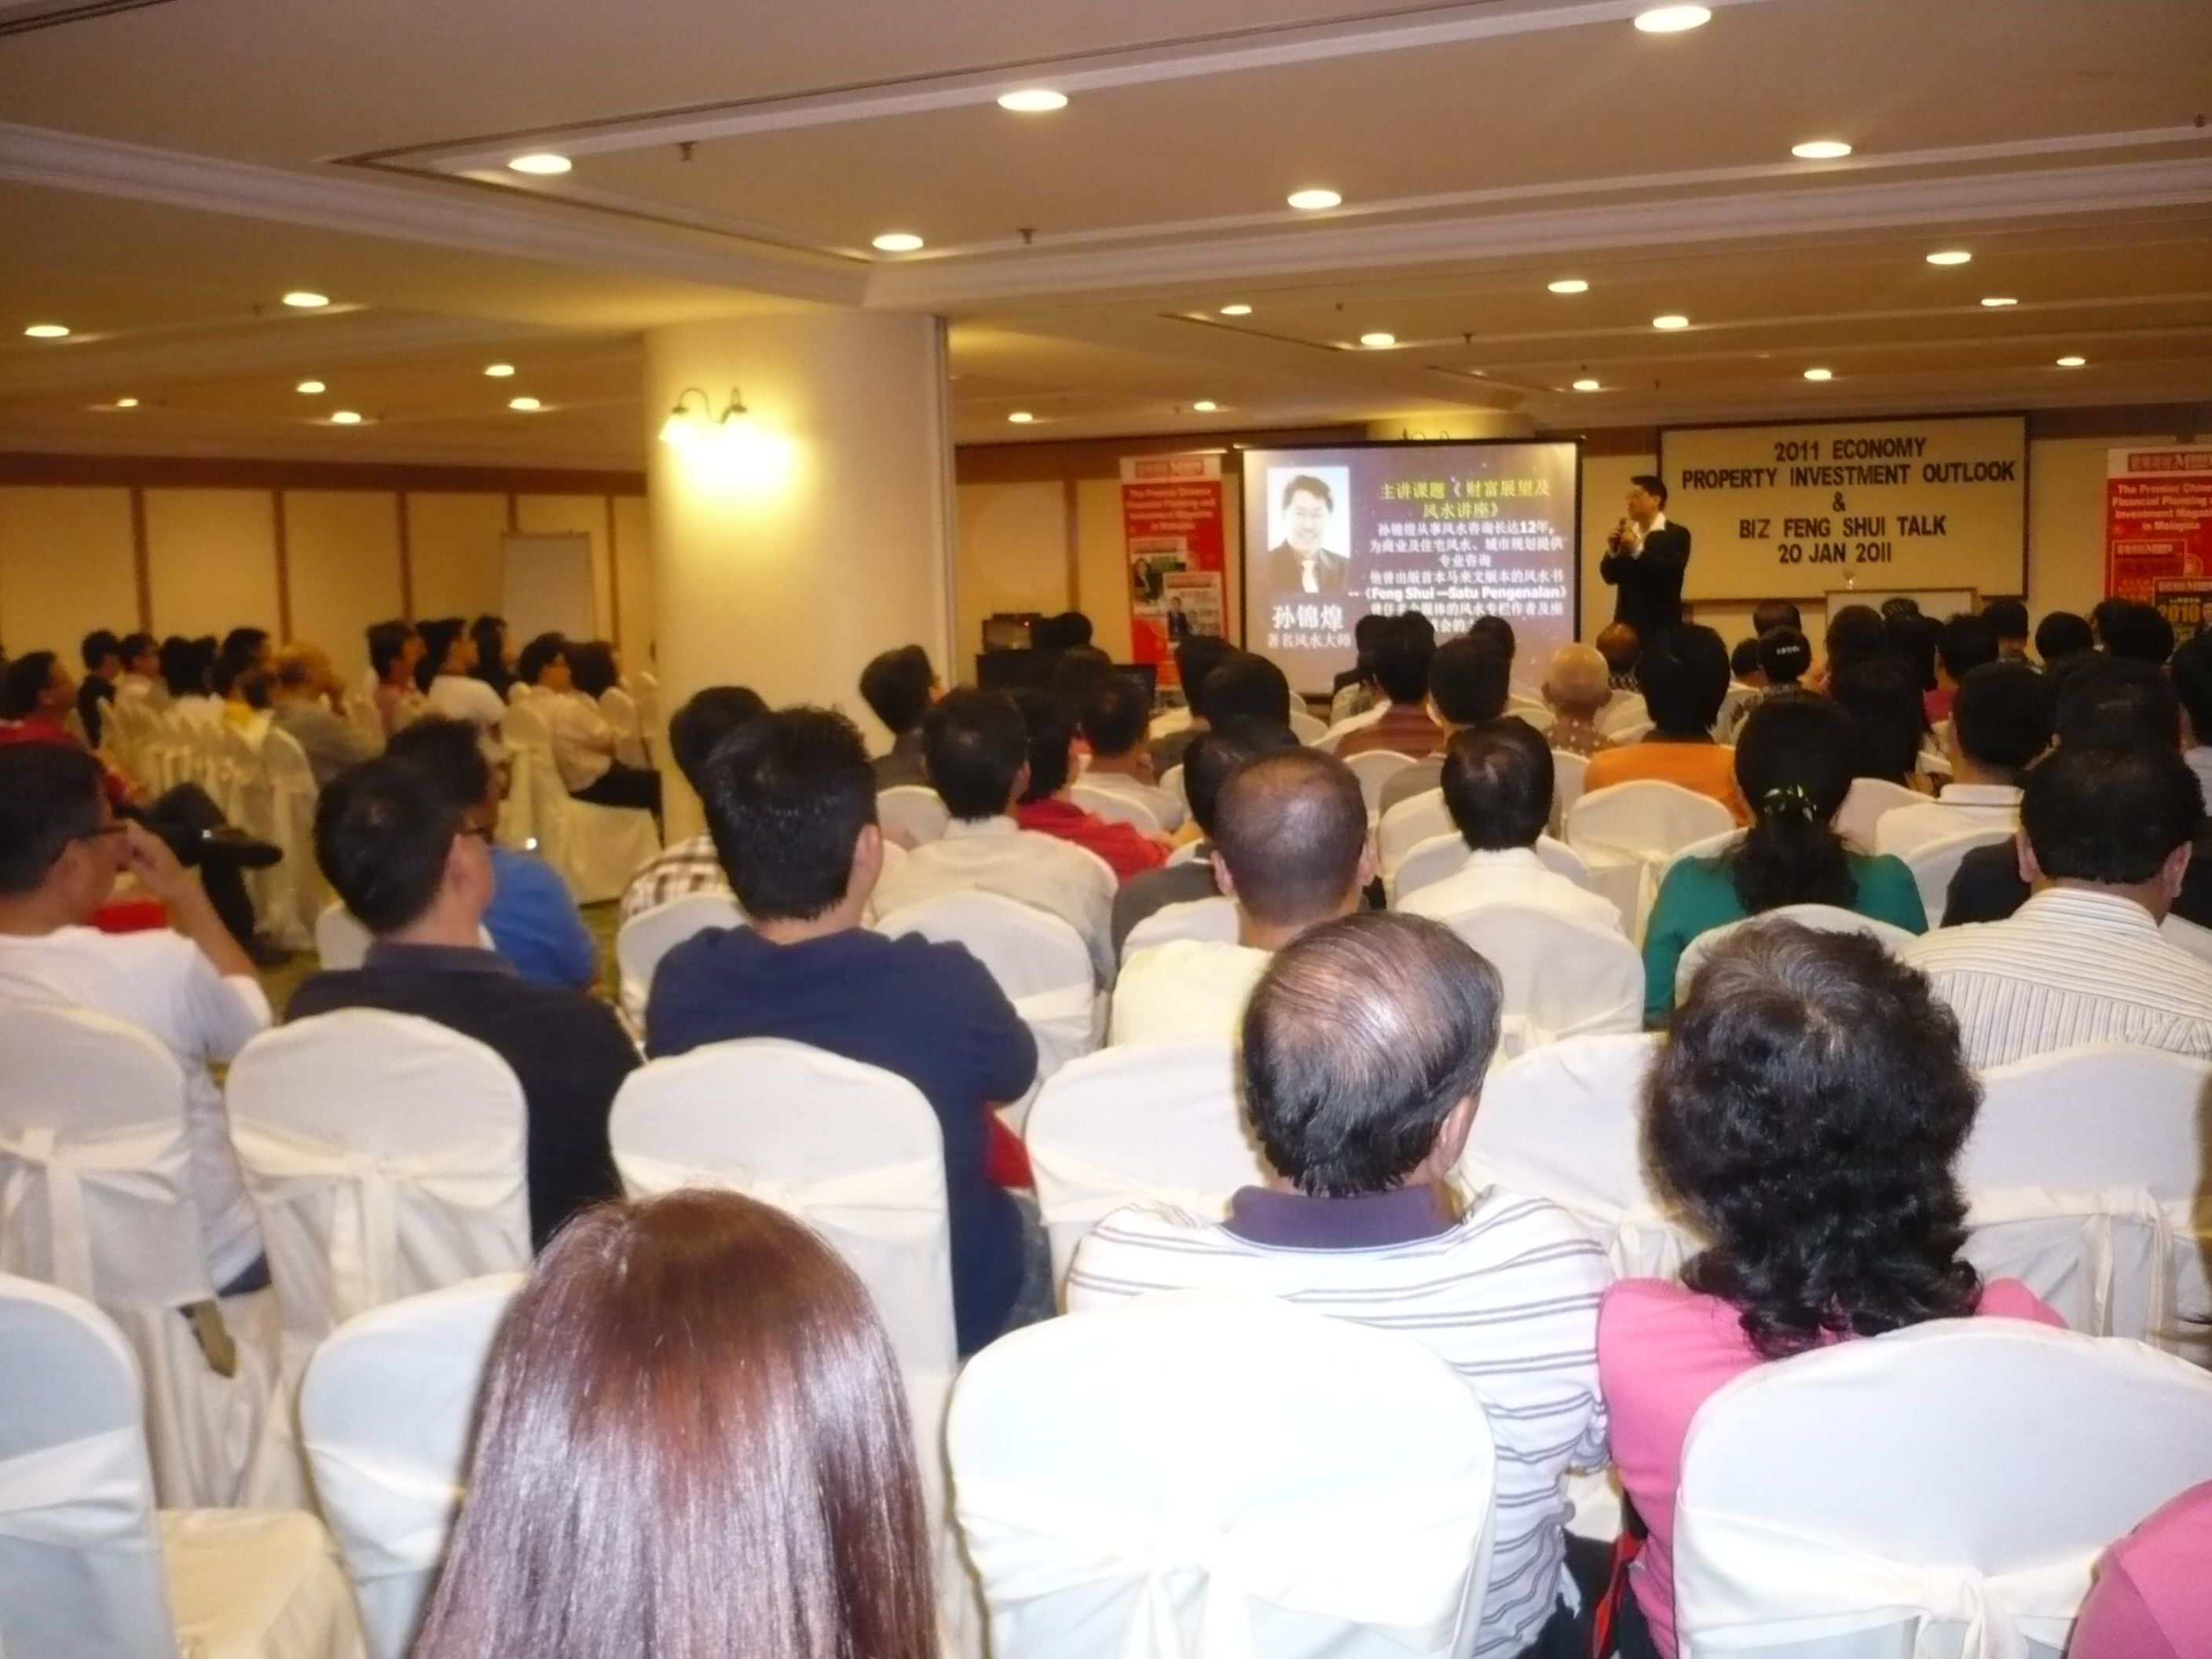 Master Soon Deliver His Feng Shui Speech At Sunway Hotel on 20 January 2011.